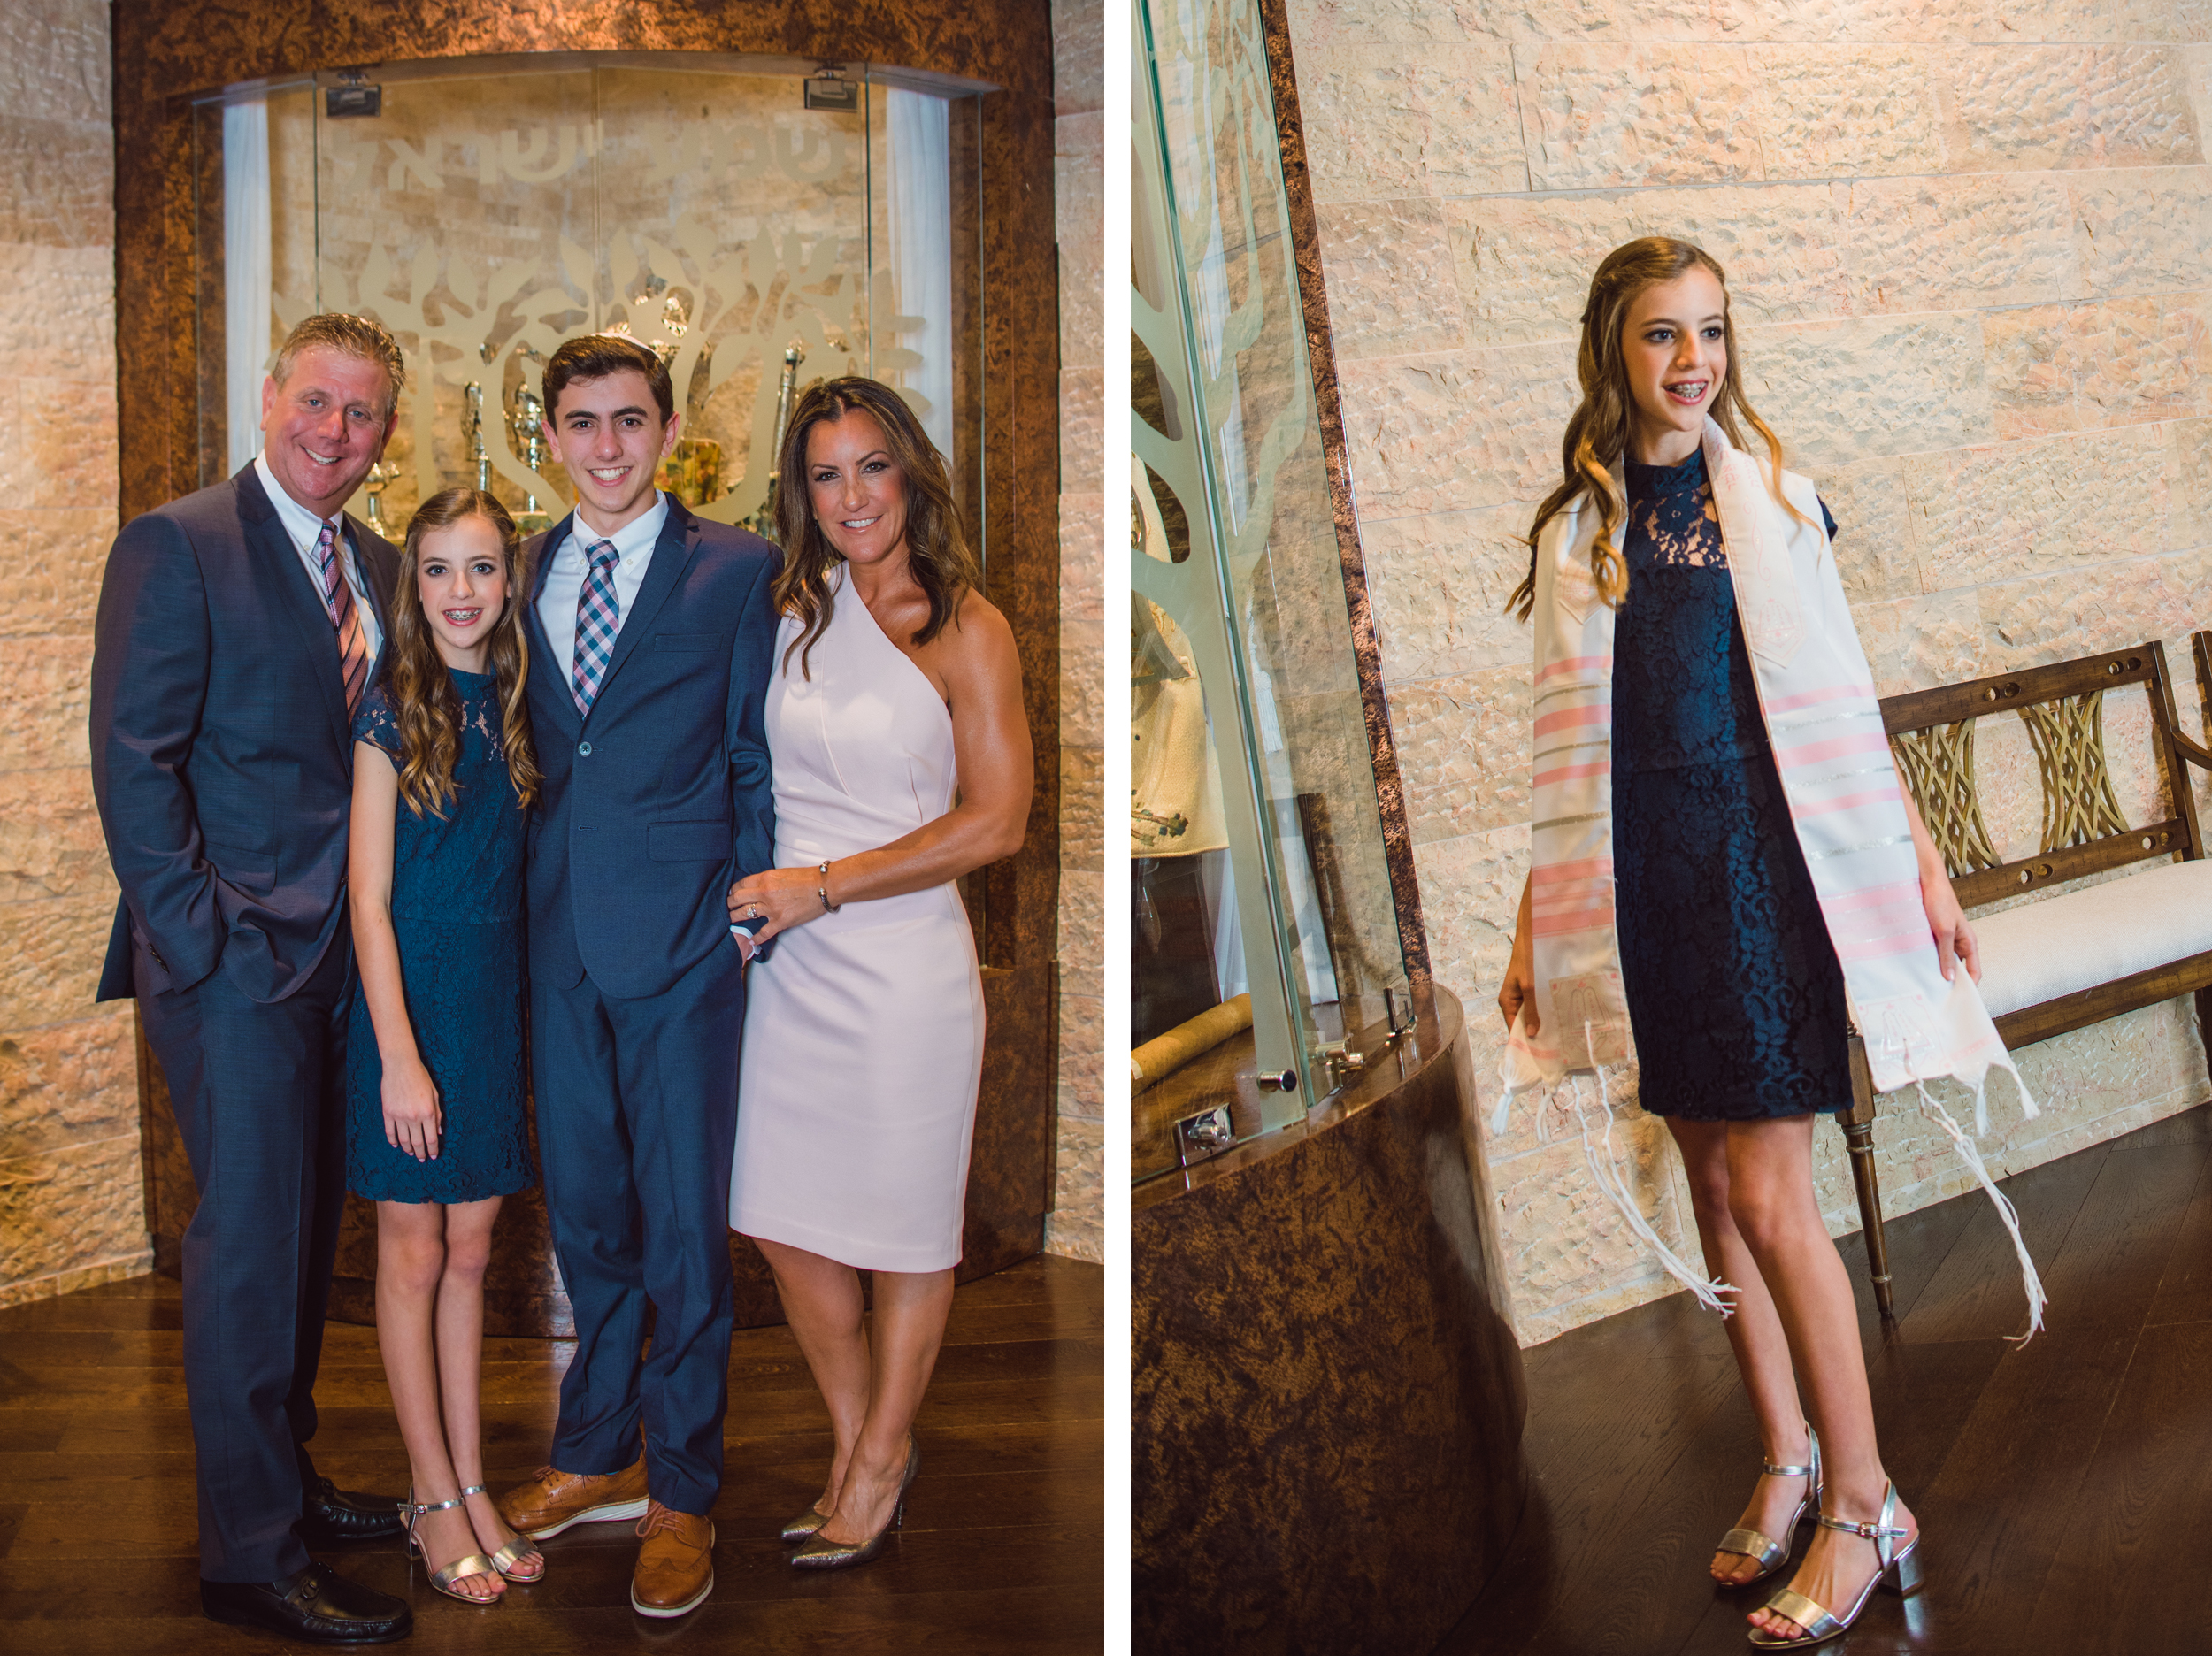 south florida bat mitzvah photography.jpg